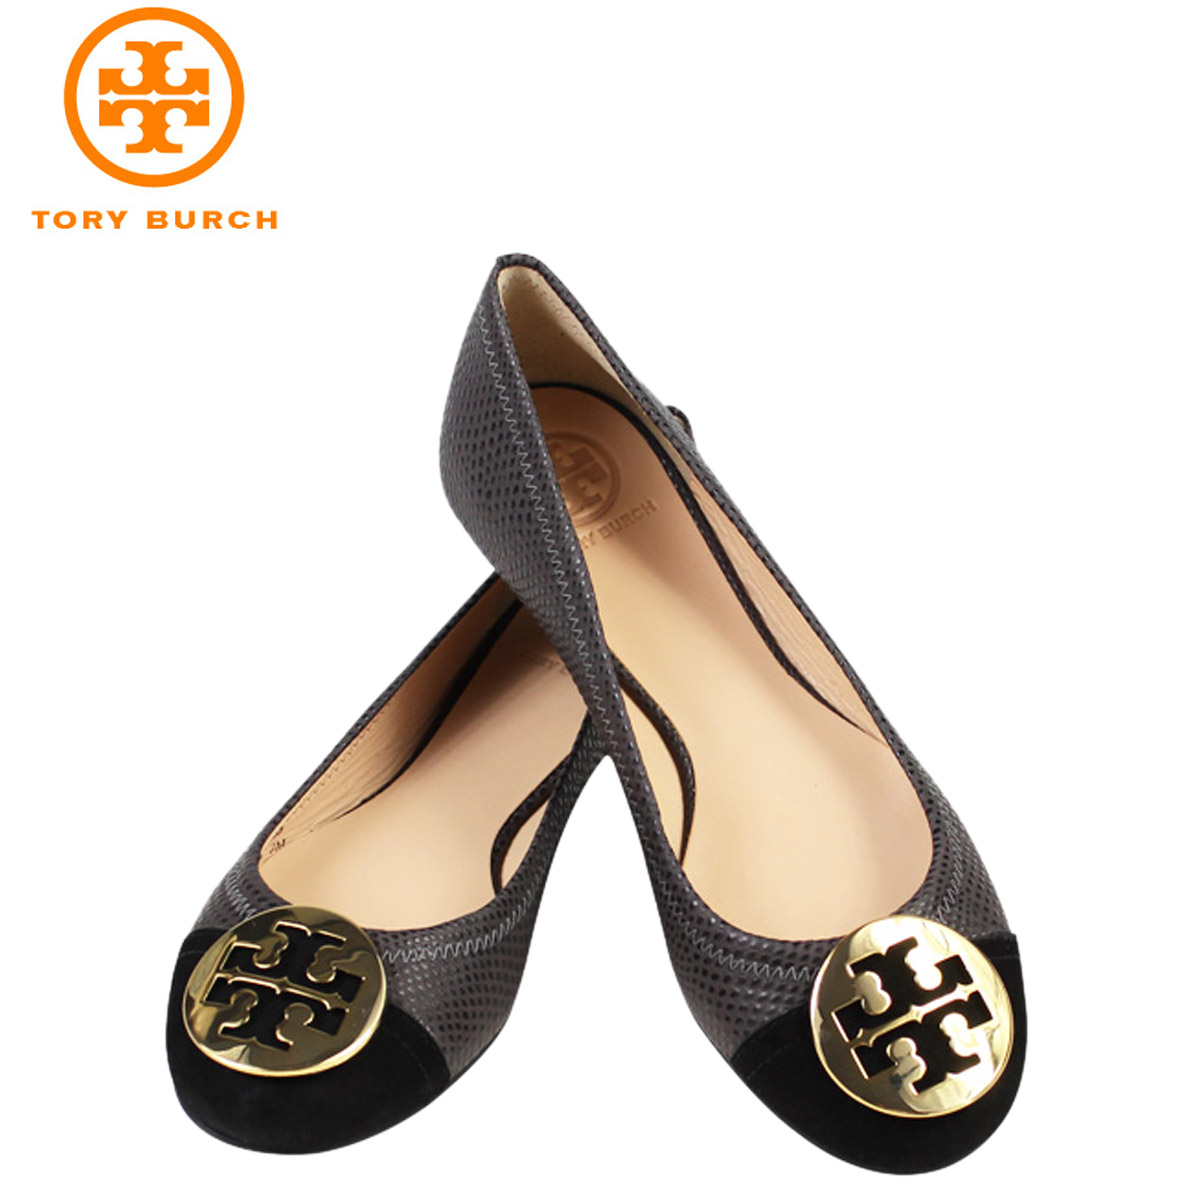 ALLSPORTS | Rakuten Global Market: Tory Burch TORY BURCH Womens Serena 2  Ballet flat pumps SERENA 2 BALLET FLAT leather ballet shoes 31148200 056  charcoal ...